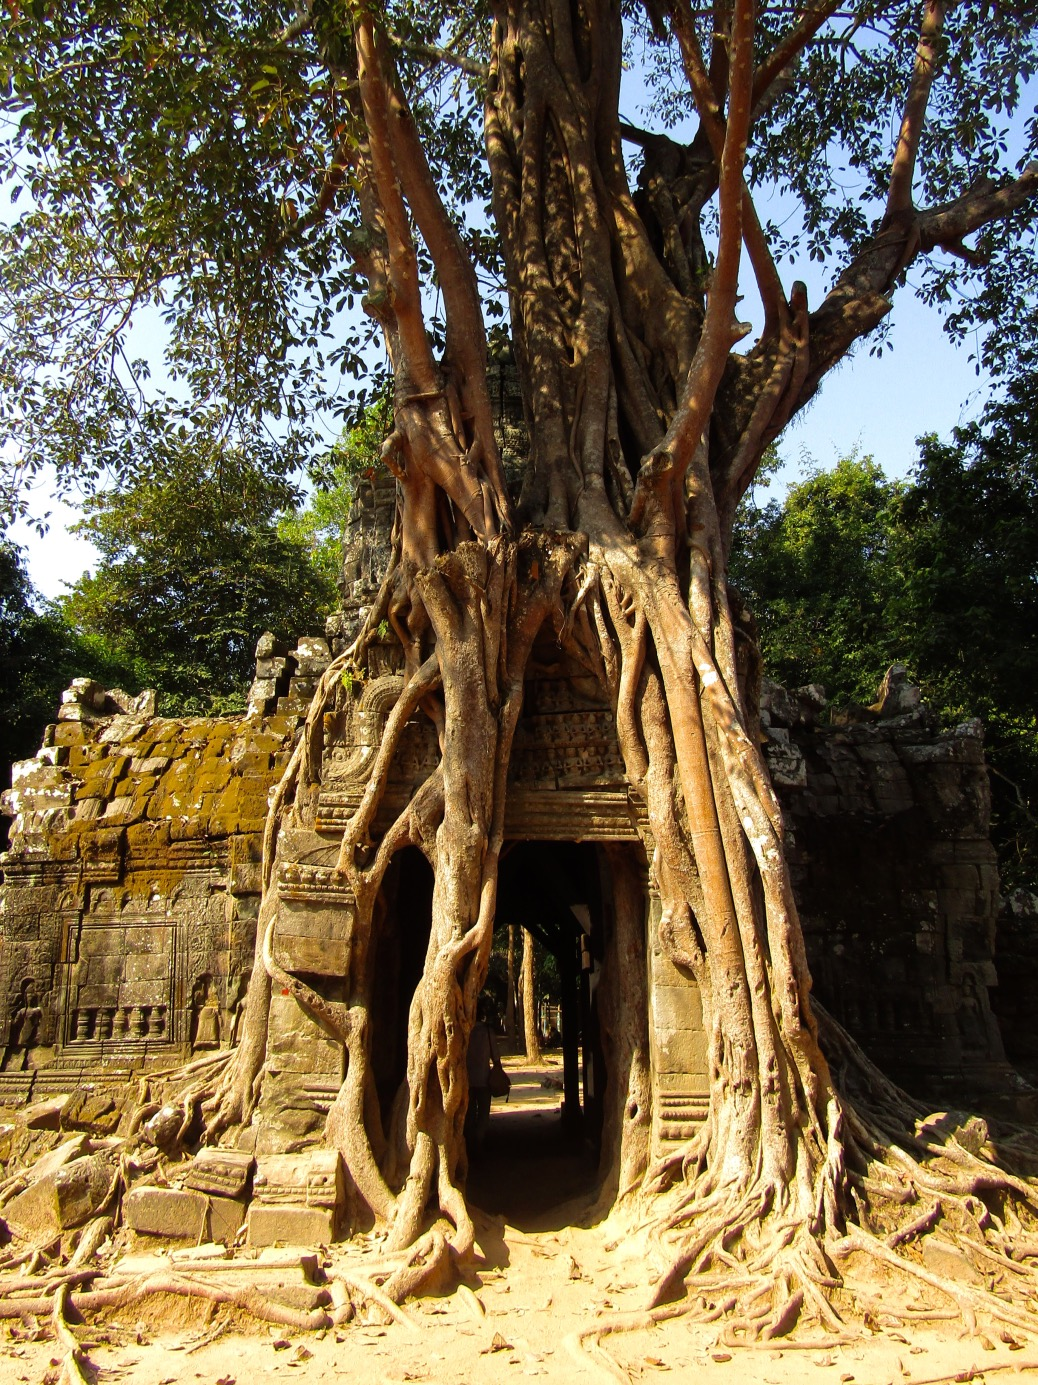 Ta Som, another 12th century temple built during the reign of King Jayavarman VII, is regarded as a mini Ta Prohm thanks to its Spung-wrapped east entrance.